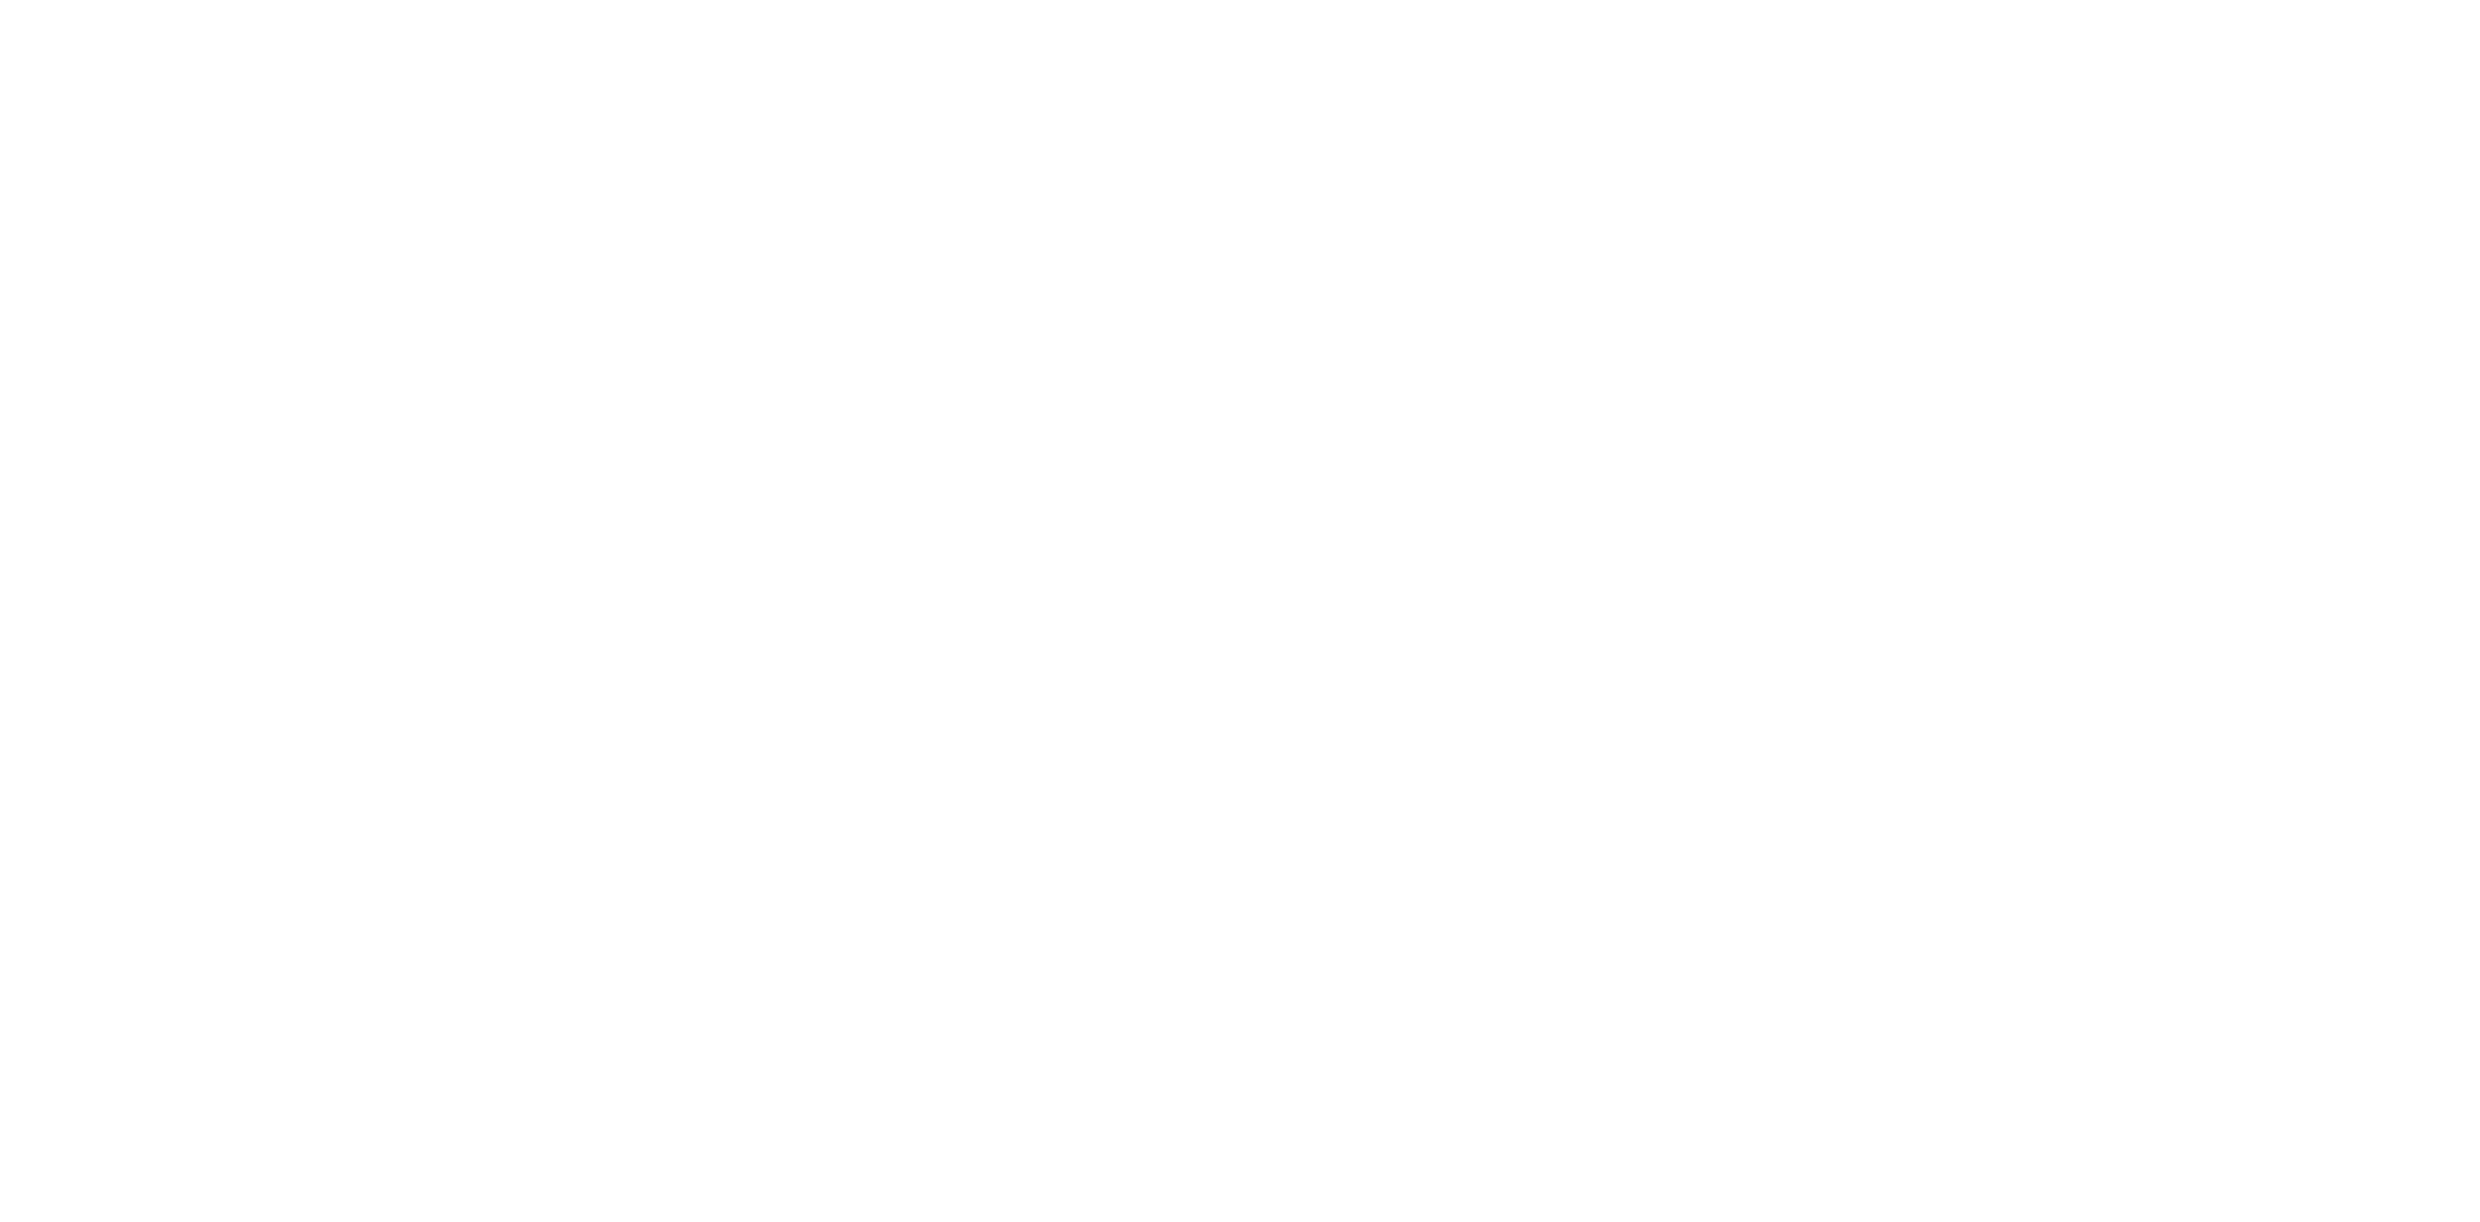 UPES SPE Student Chapter